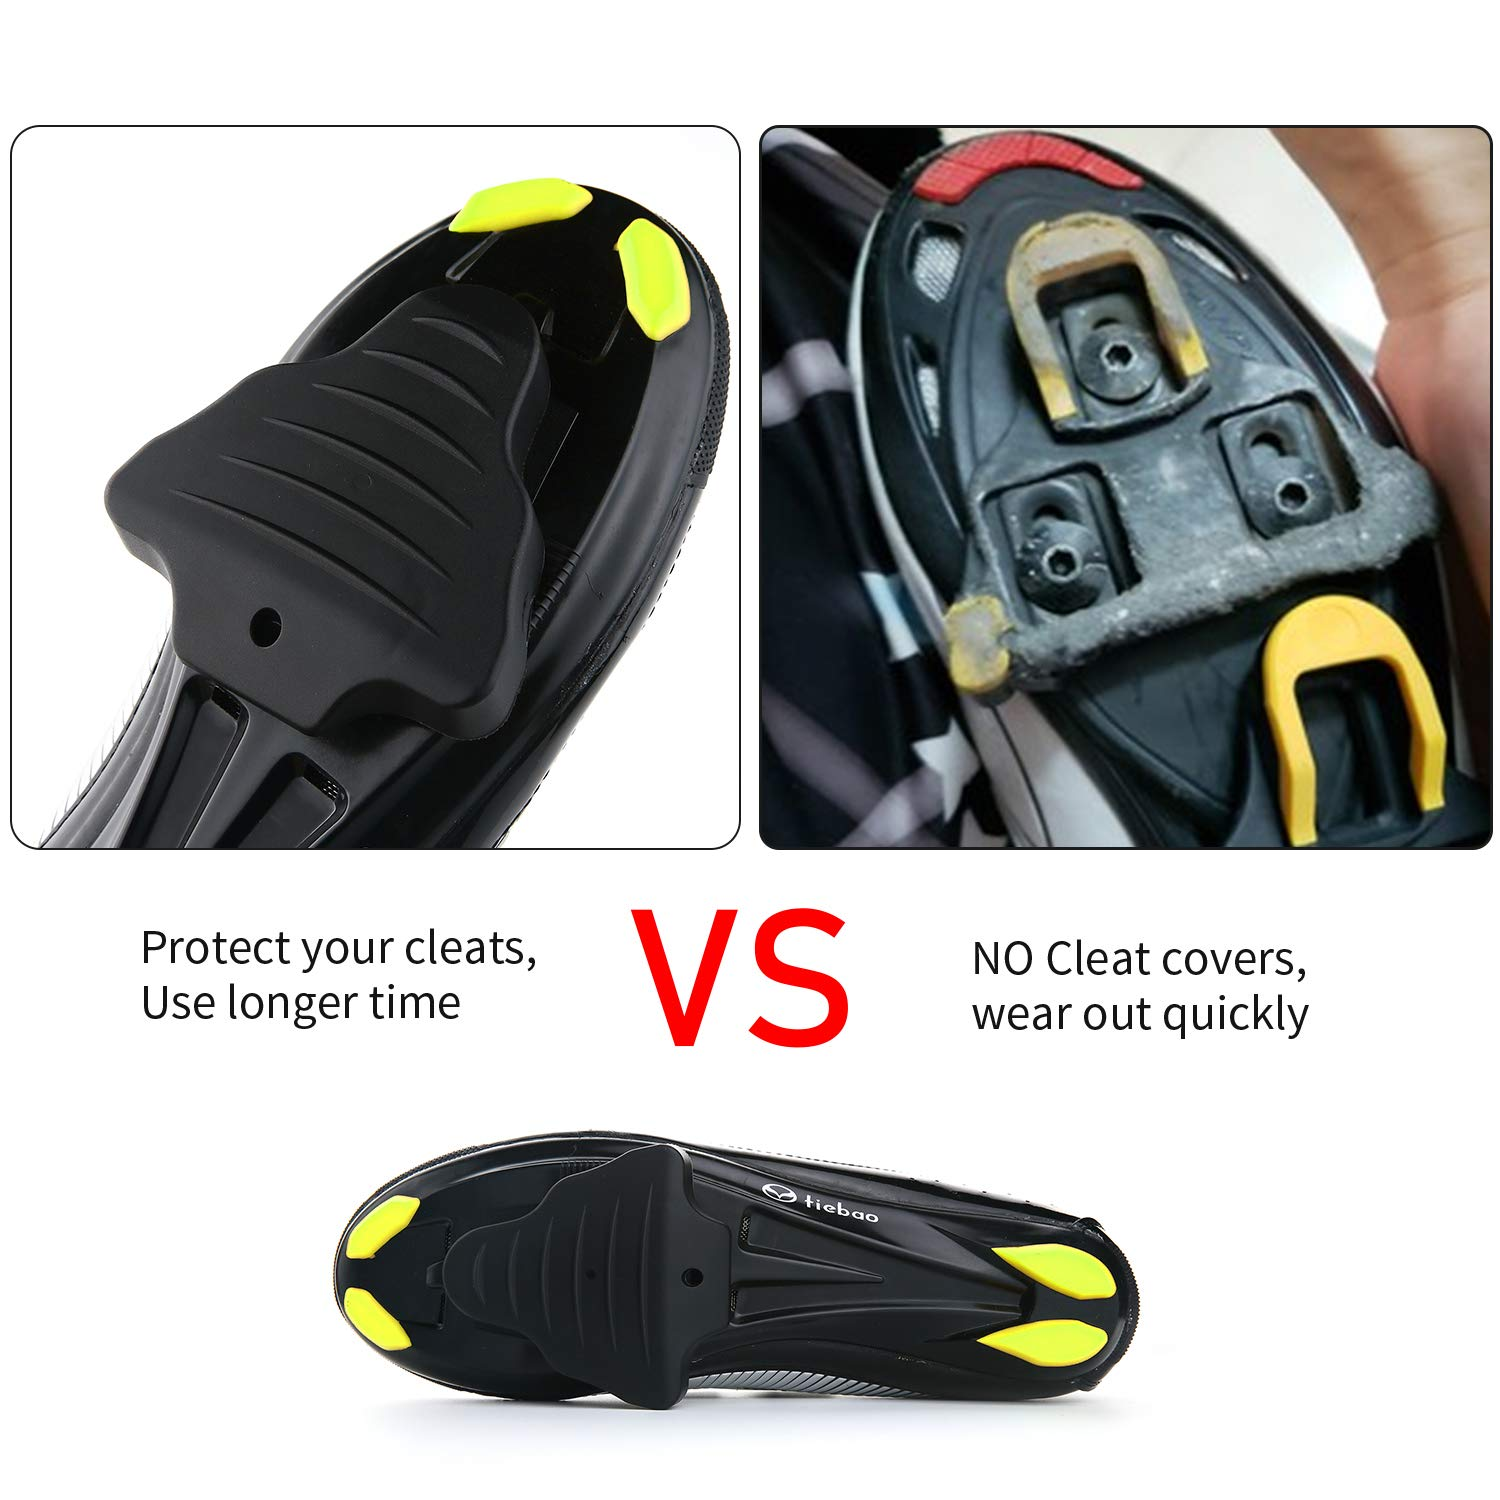 e68f61af878b0d Amazon.com : LANNIU Road Bike Cleats+Cleat Covers Set, Compatible with Shimano  SPD-SL Pedals SM-SH11 Cleats, 6 Degree Float for Road Bike Outdoor/Indoor  ...